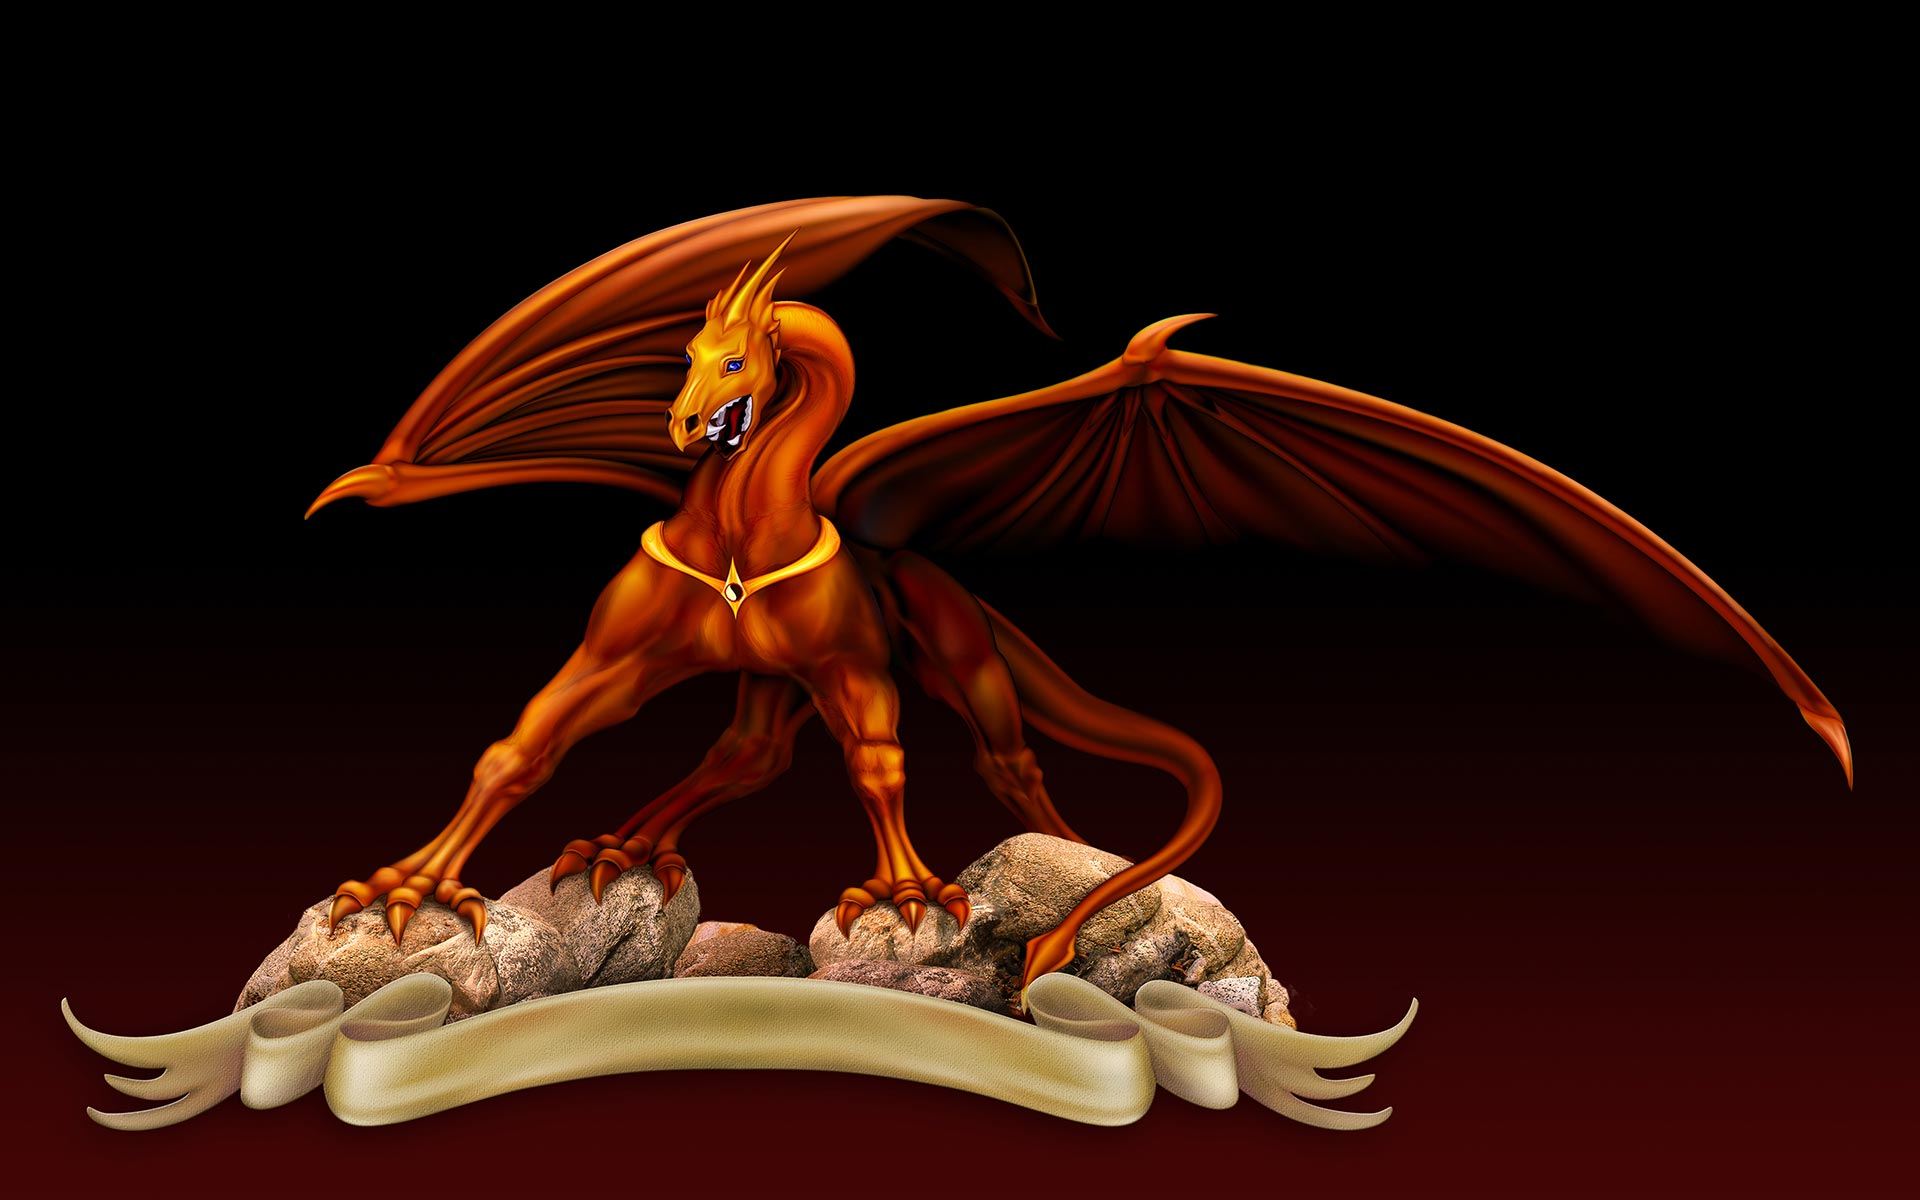 Dragon HD Wallpapers 3